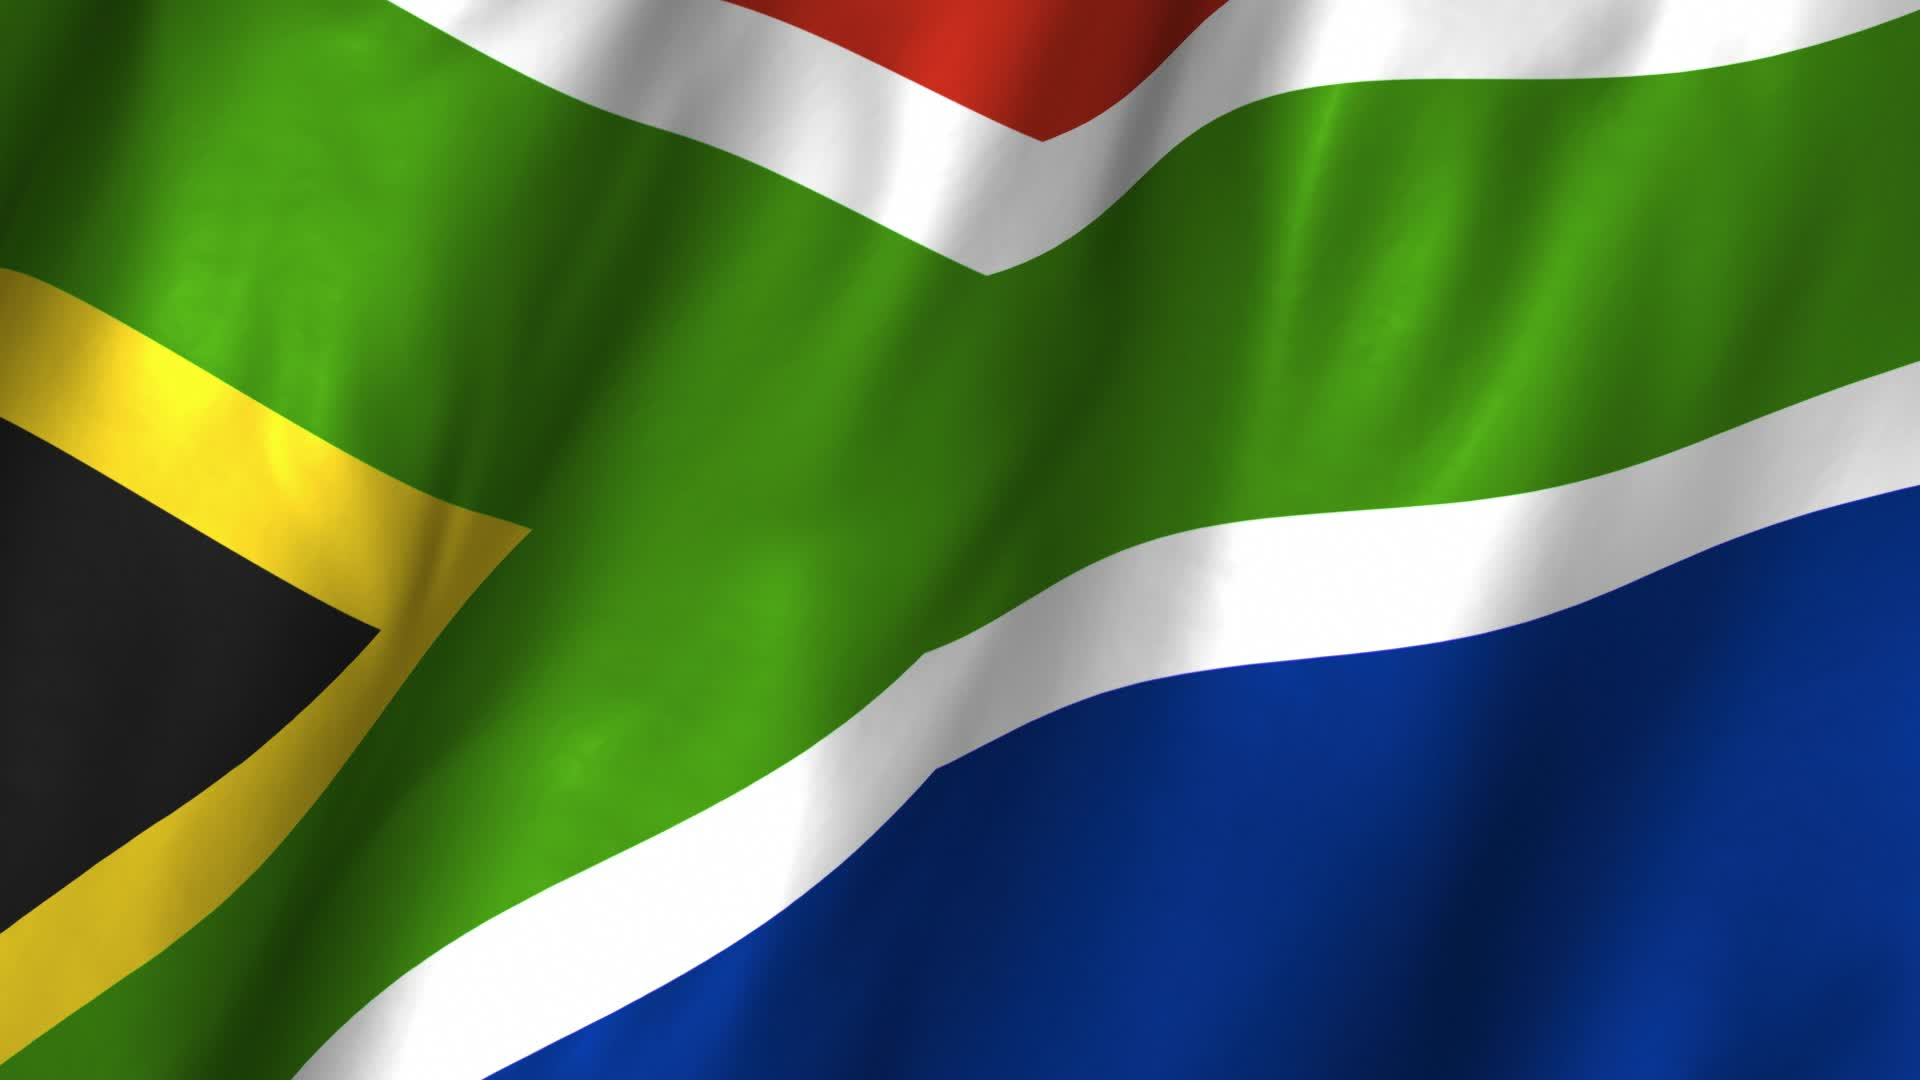 waving south africa flag images free download